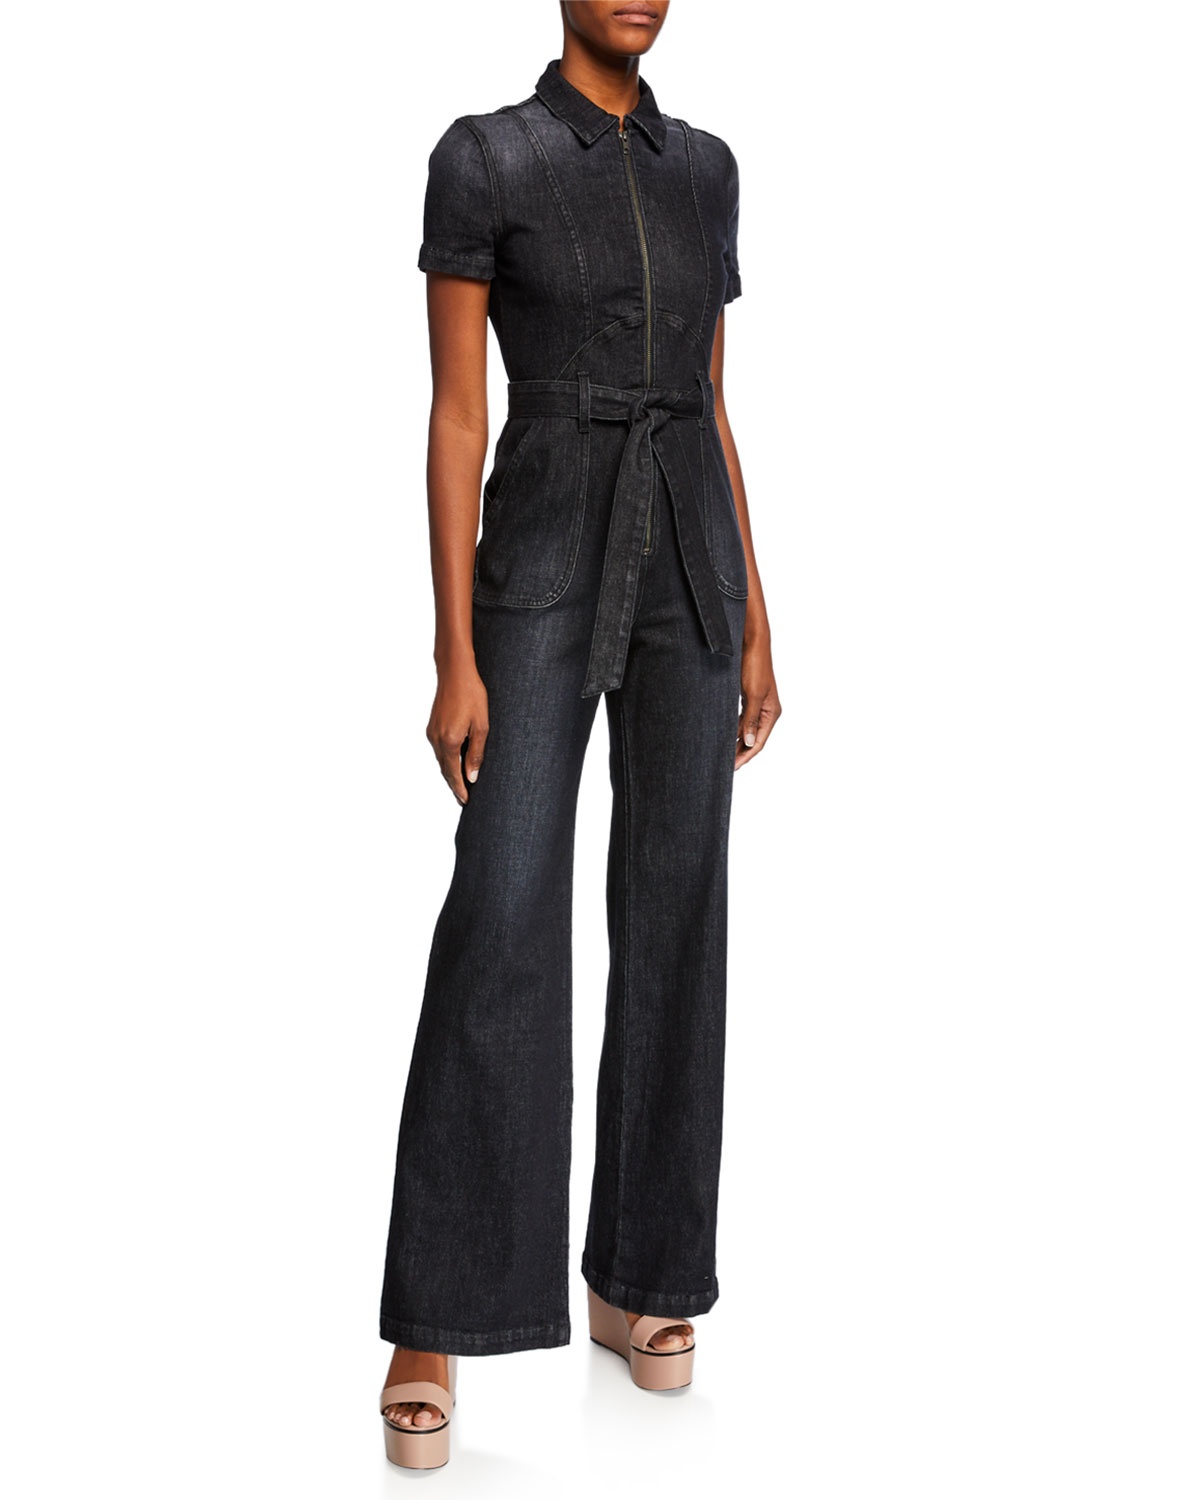 7aaa94fbe7e ALICE + OLIVIA JEANS Gorgeous Wide-Leg Denim Jumpsuit